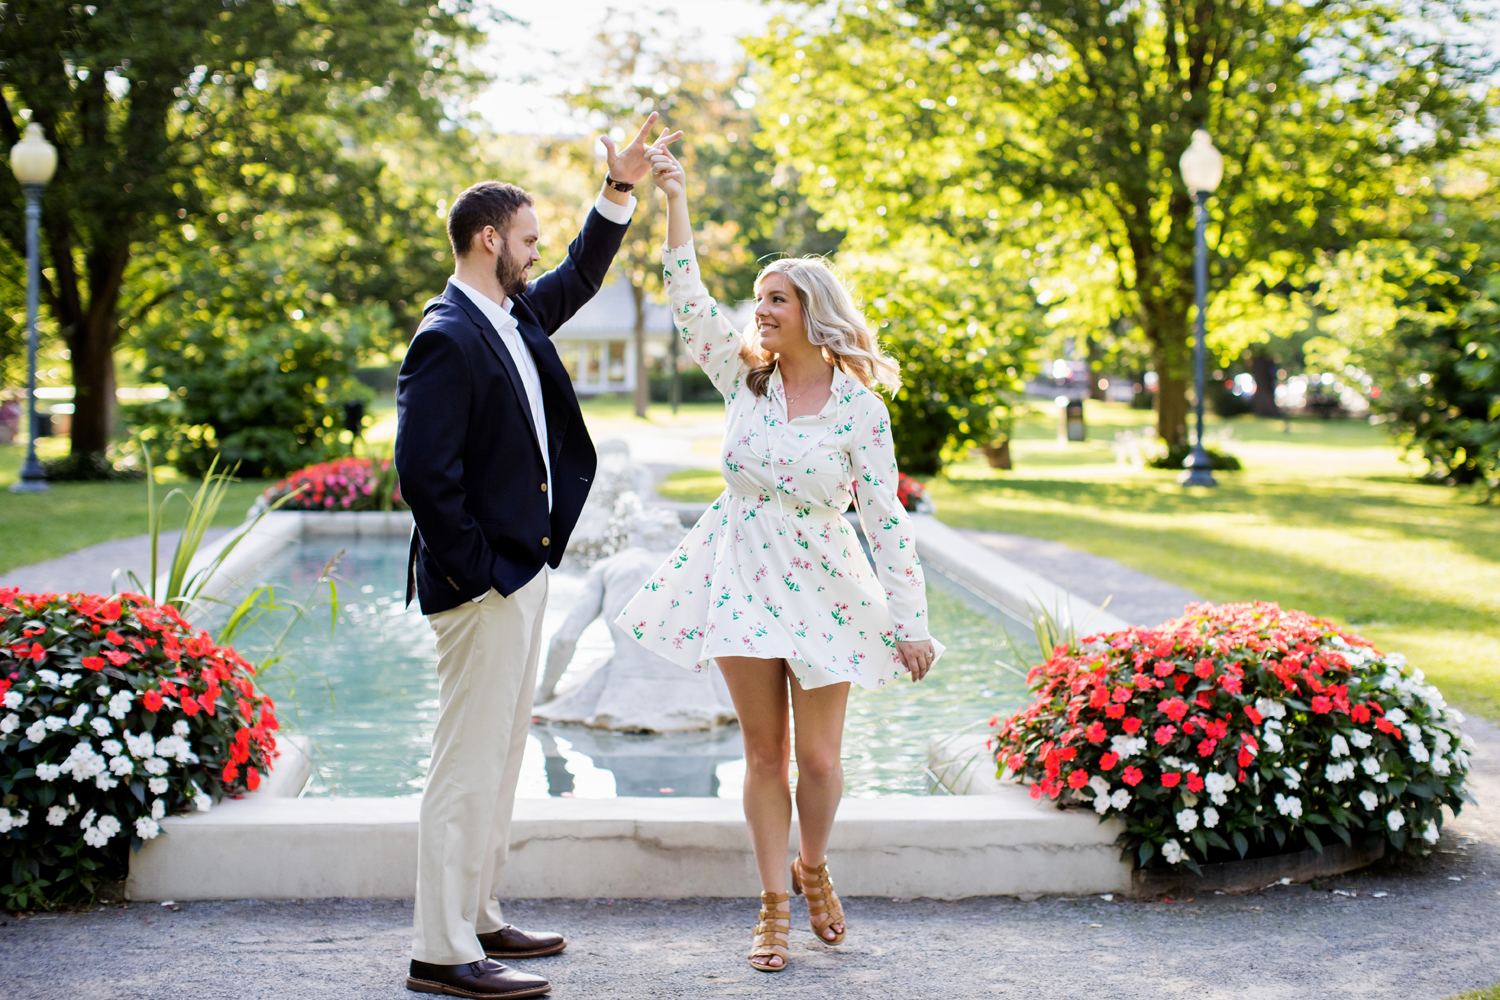 Saratoga Race Track engagement photography15.jpg